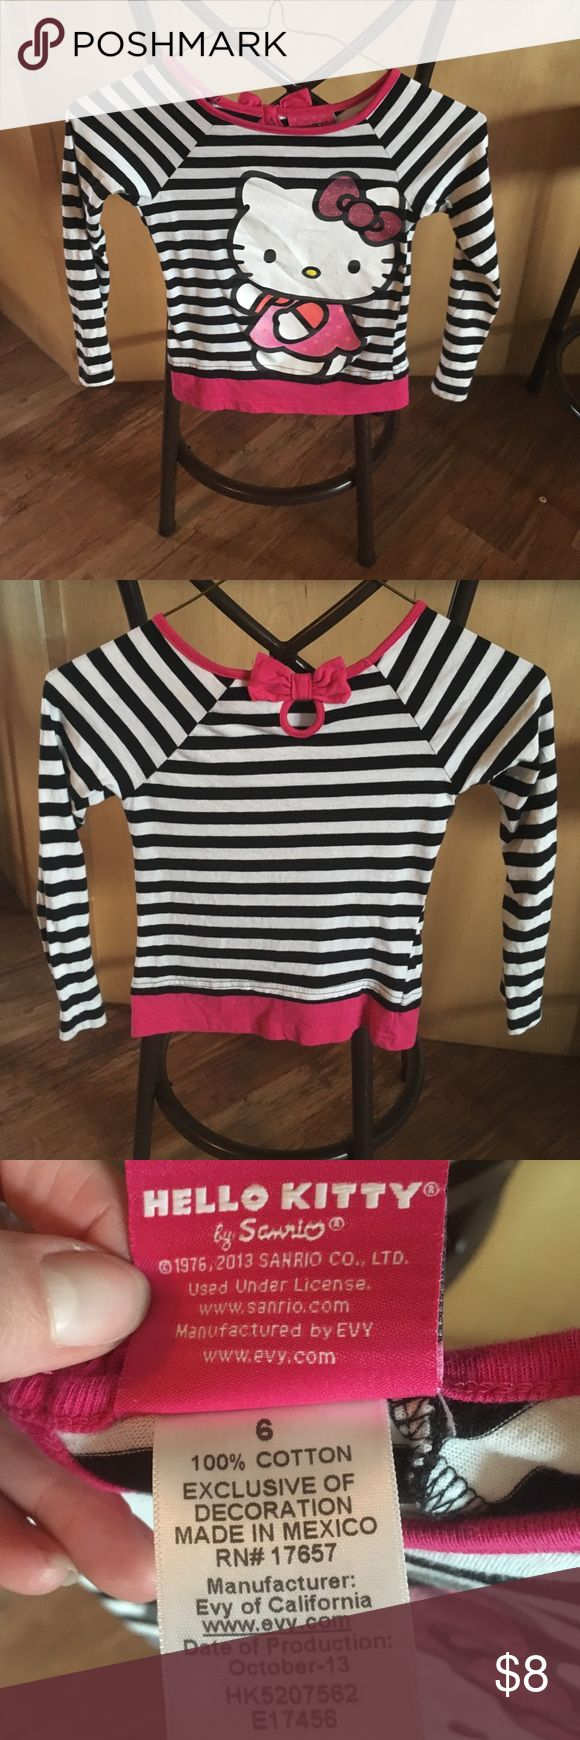 Hello Kitty girl long sleeve shirt size 6. Girls black, white, and pink Hello Kitty little lady (girl) long sleeve shirt. Hello Kitty Shirts & Tops Tees - Long Sleeve